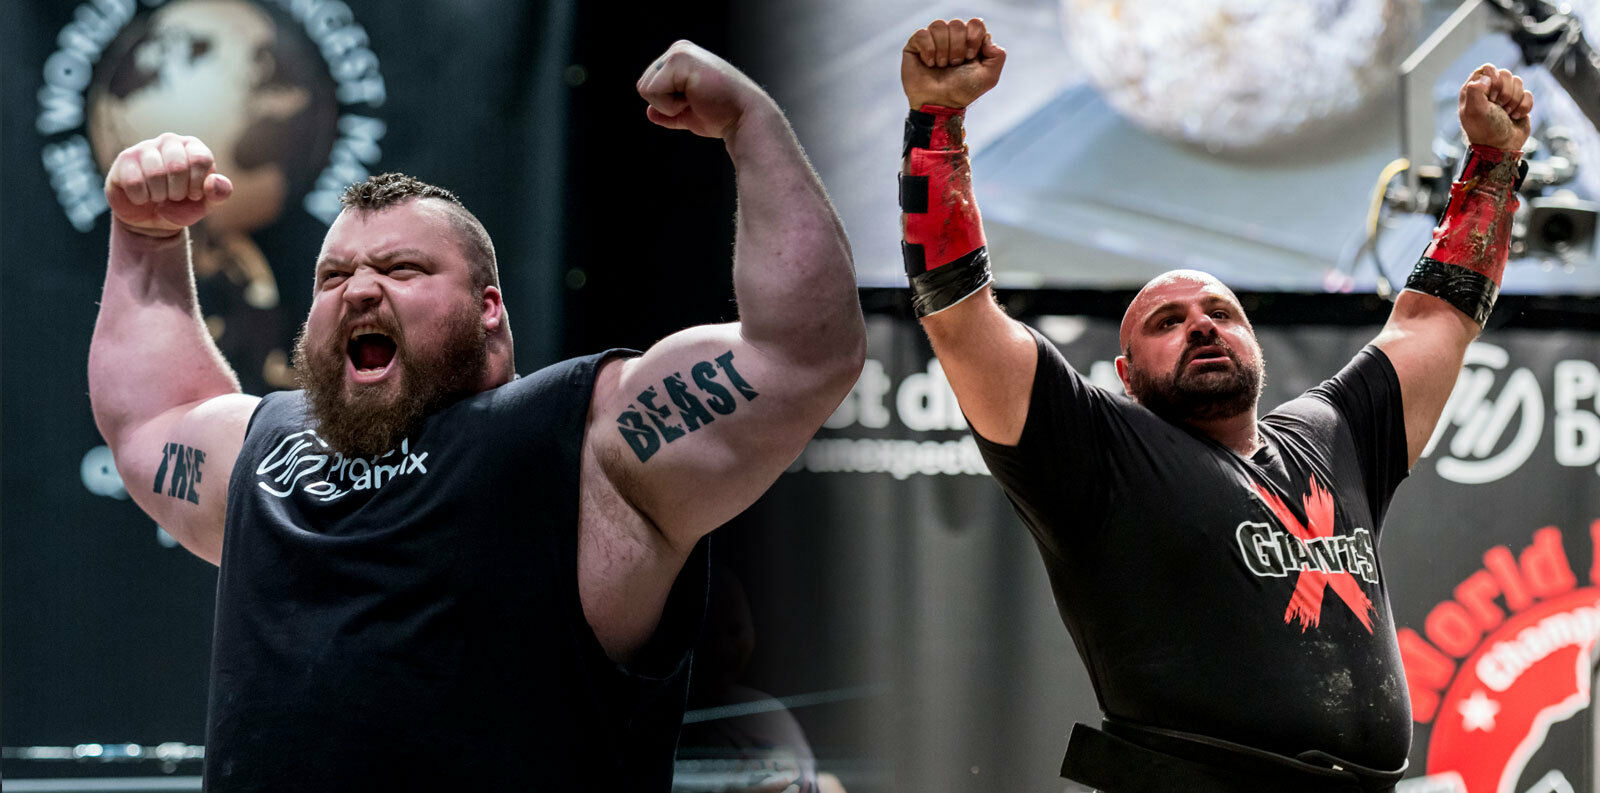 Europe's Strongest Man 2020